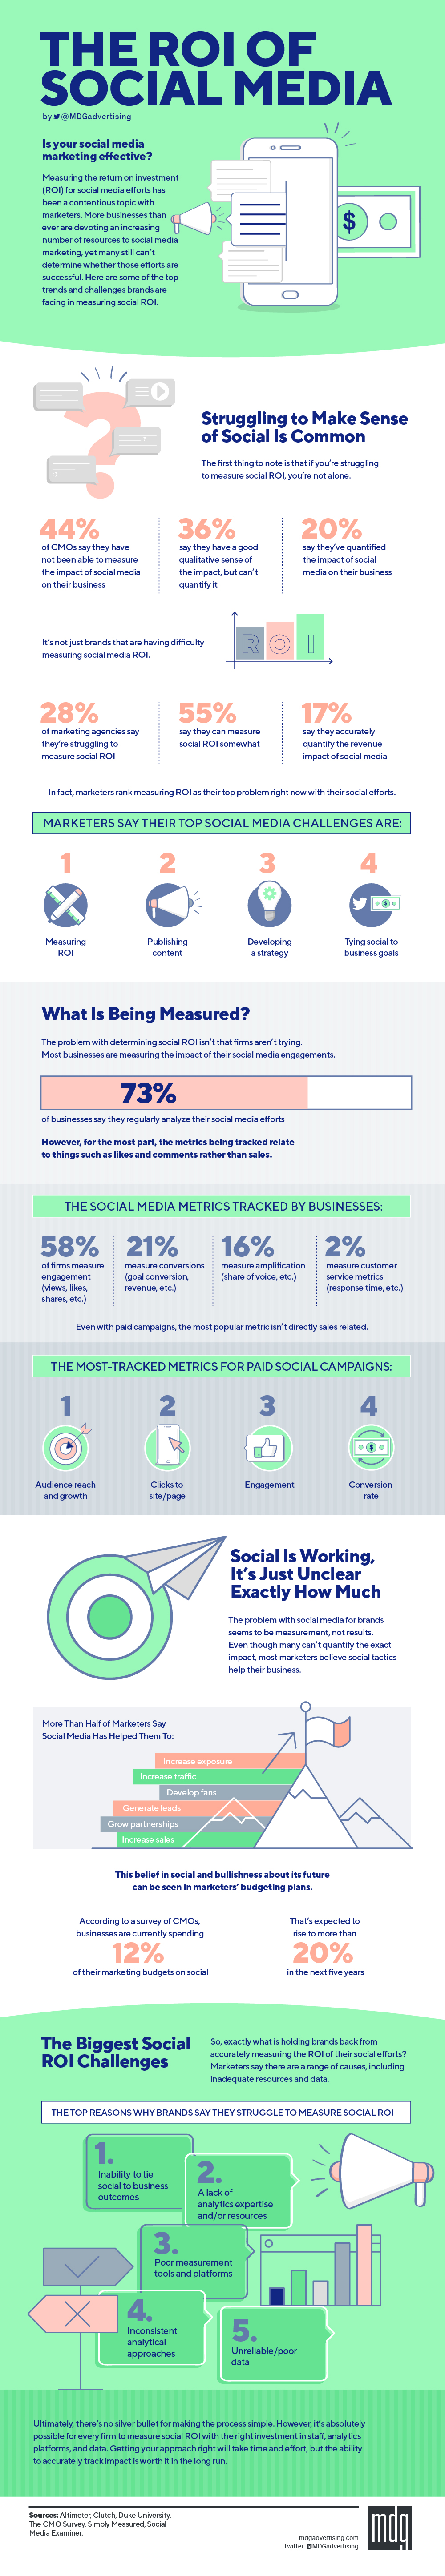 Data on the various challenges in tracking social media ROI